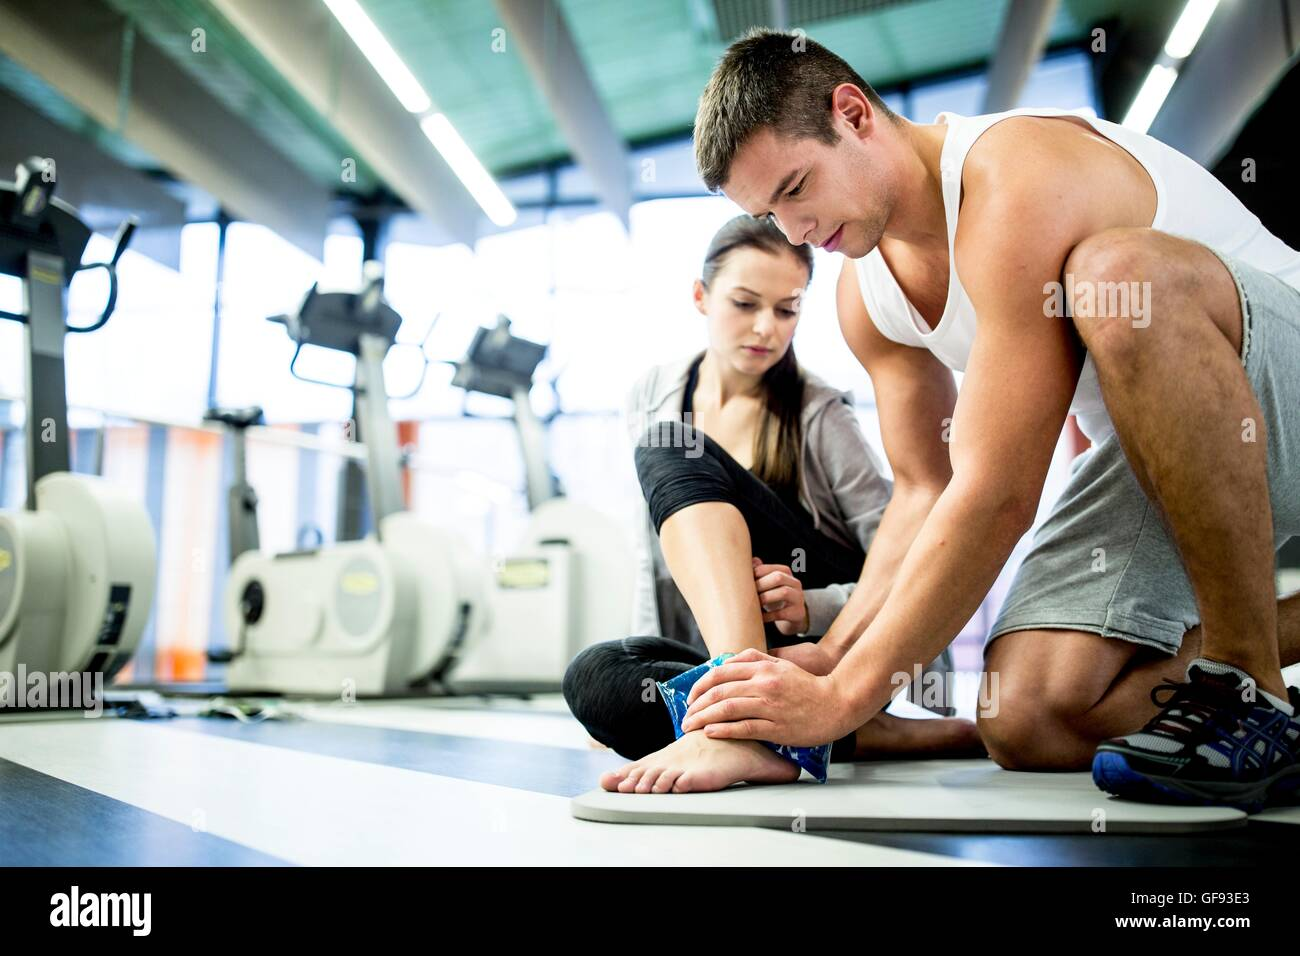 PROPERTY RELEASED. MODEL RELEASED. Young man applying ice pack on young woman's ankle in gym. - Stock Image